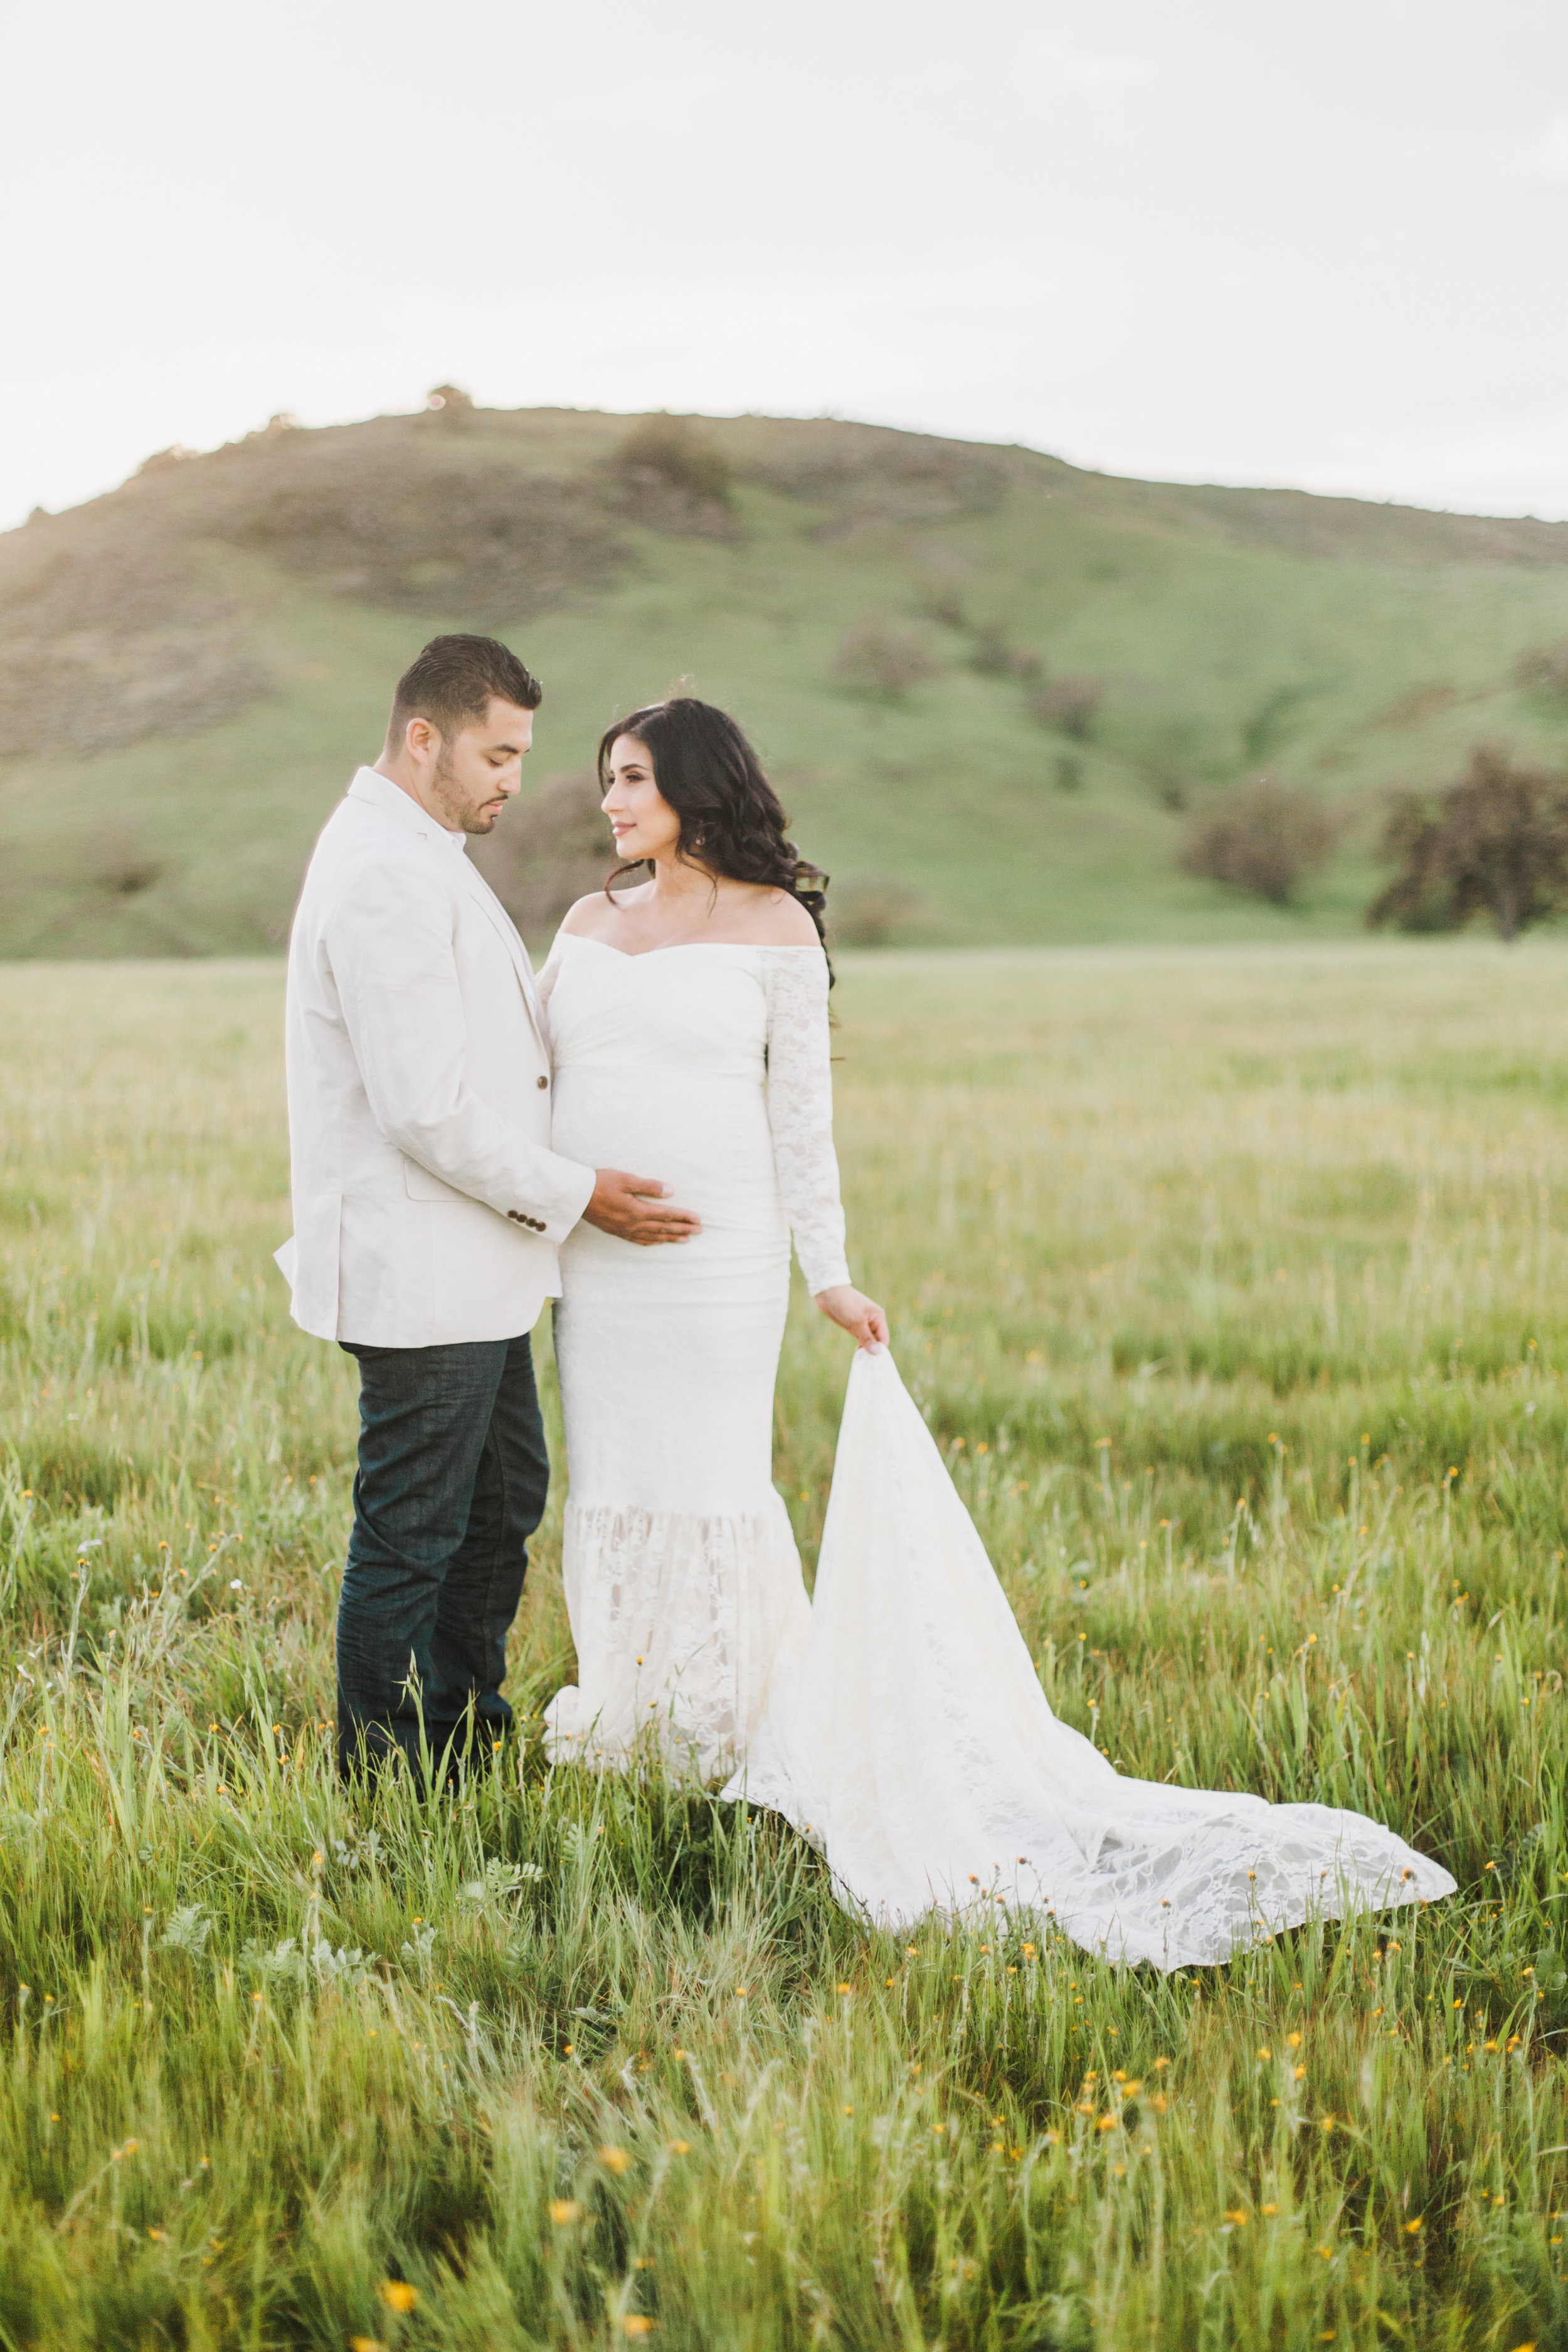 Couple standing in a grass field during maternity session in San Jose, California.